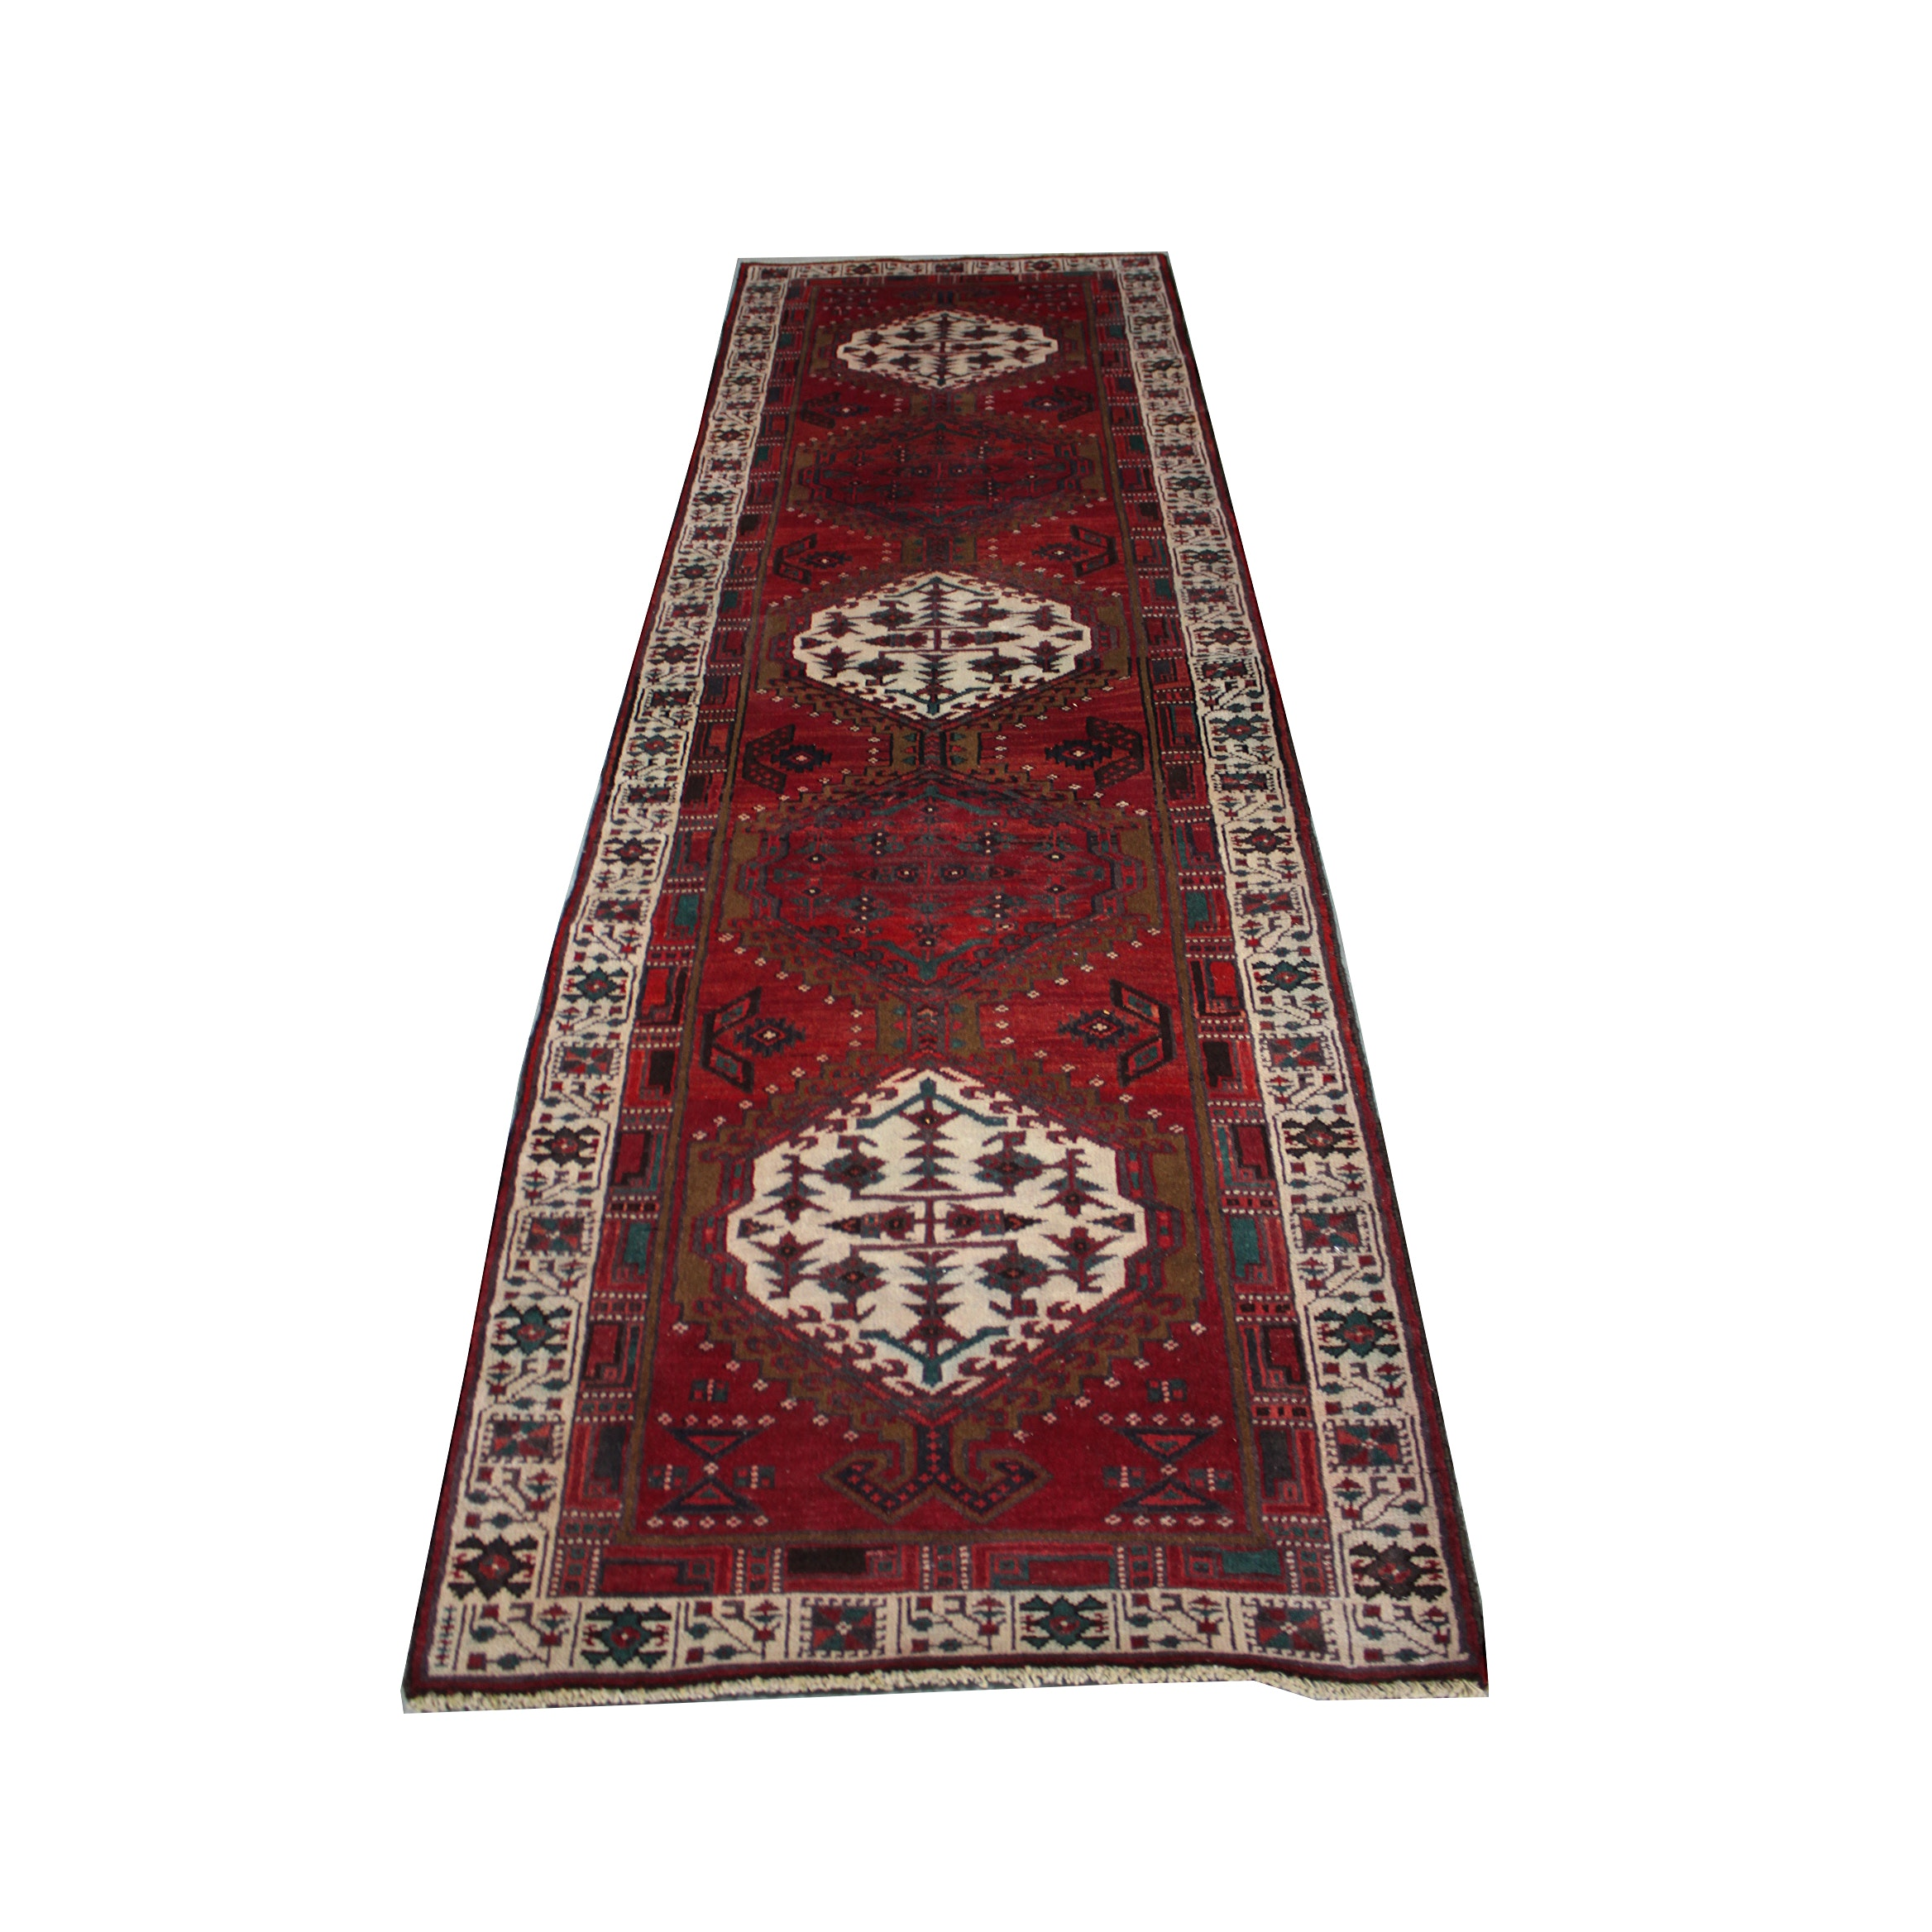 Hand-Knotted Romanian Carpet Runner in Persian Tribal Style.